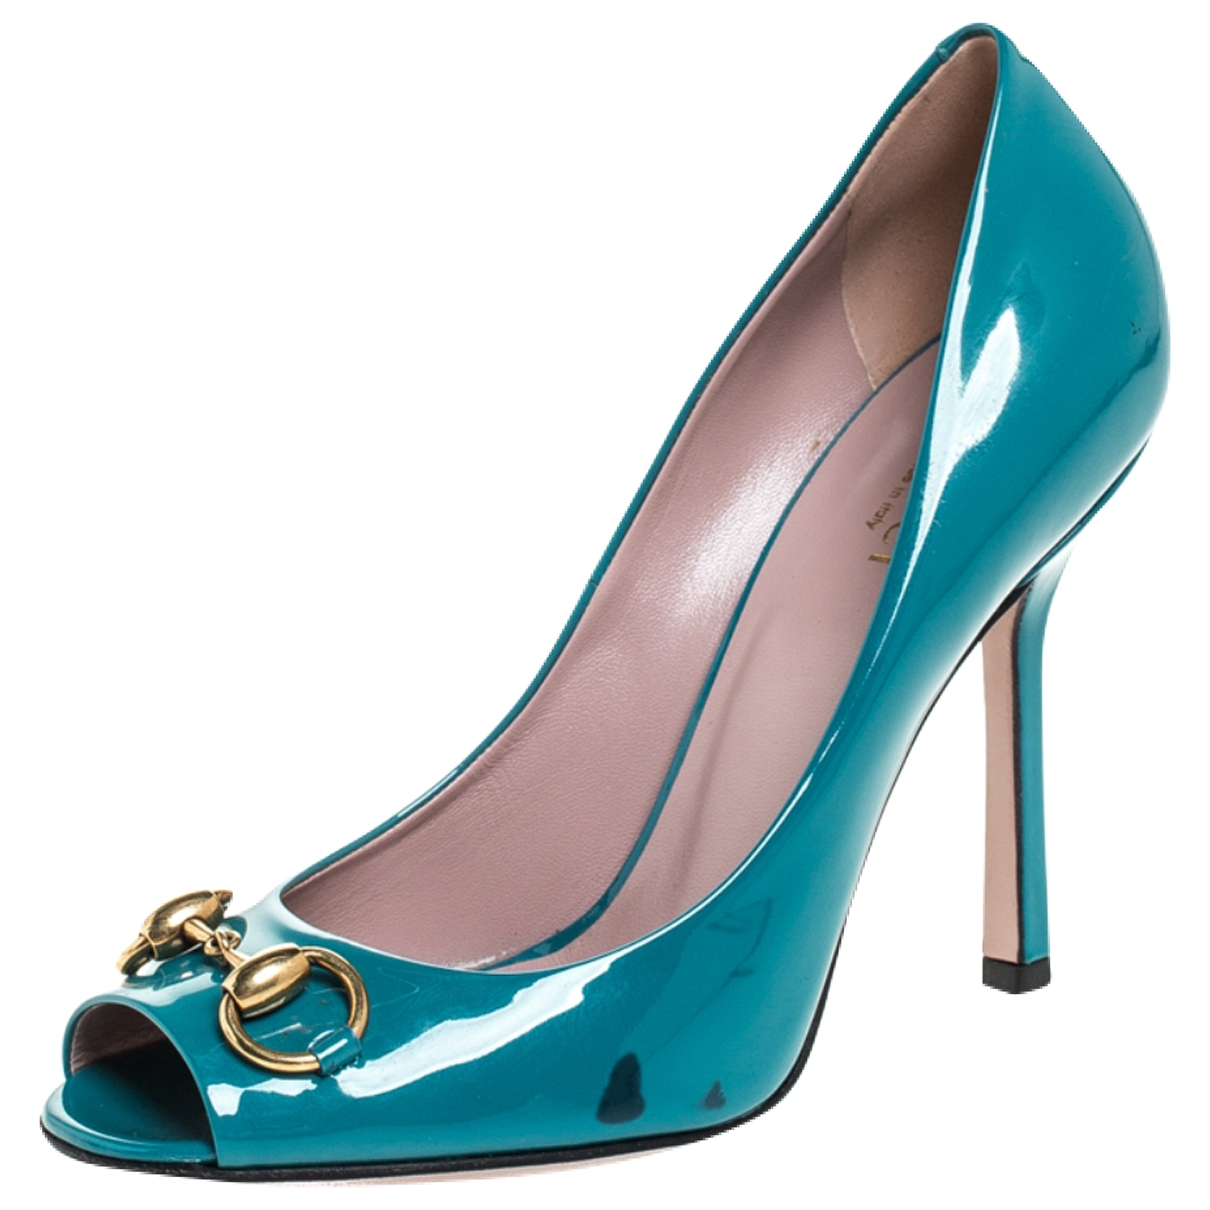 Gucci \N Blue Leather Heels for Women 7 US